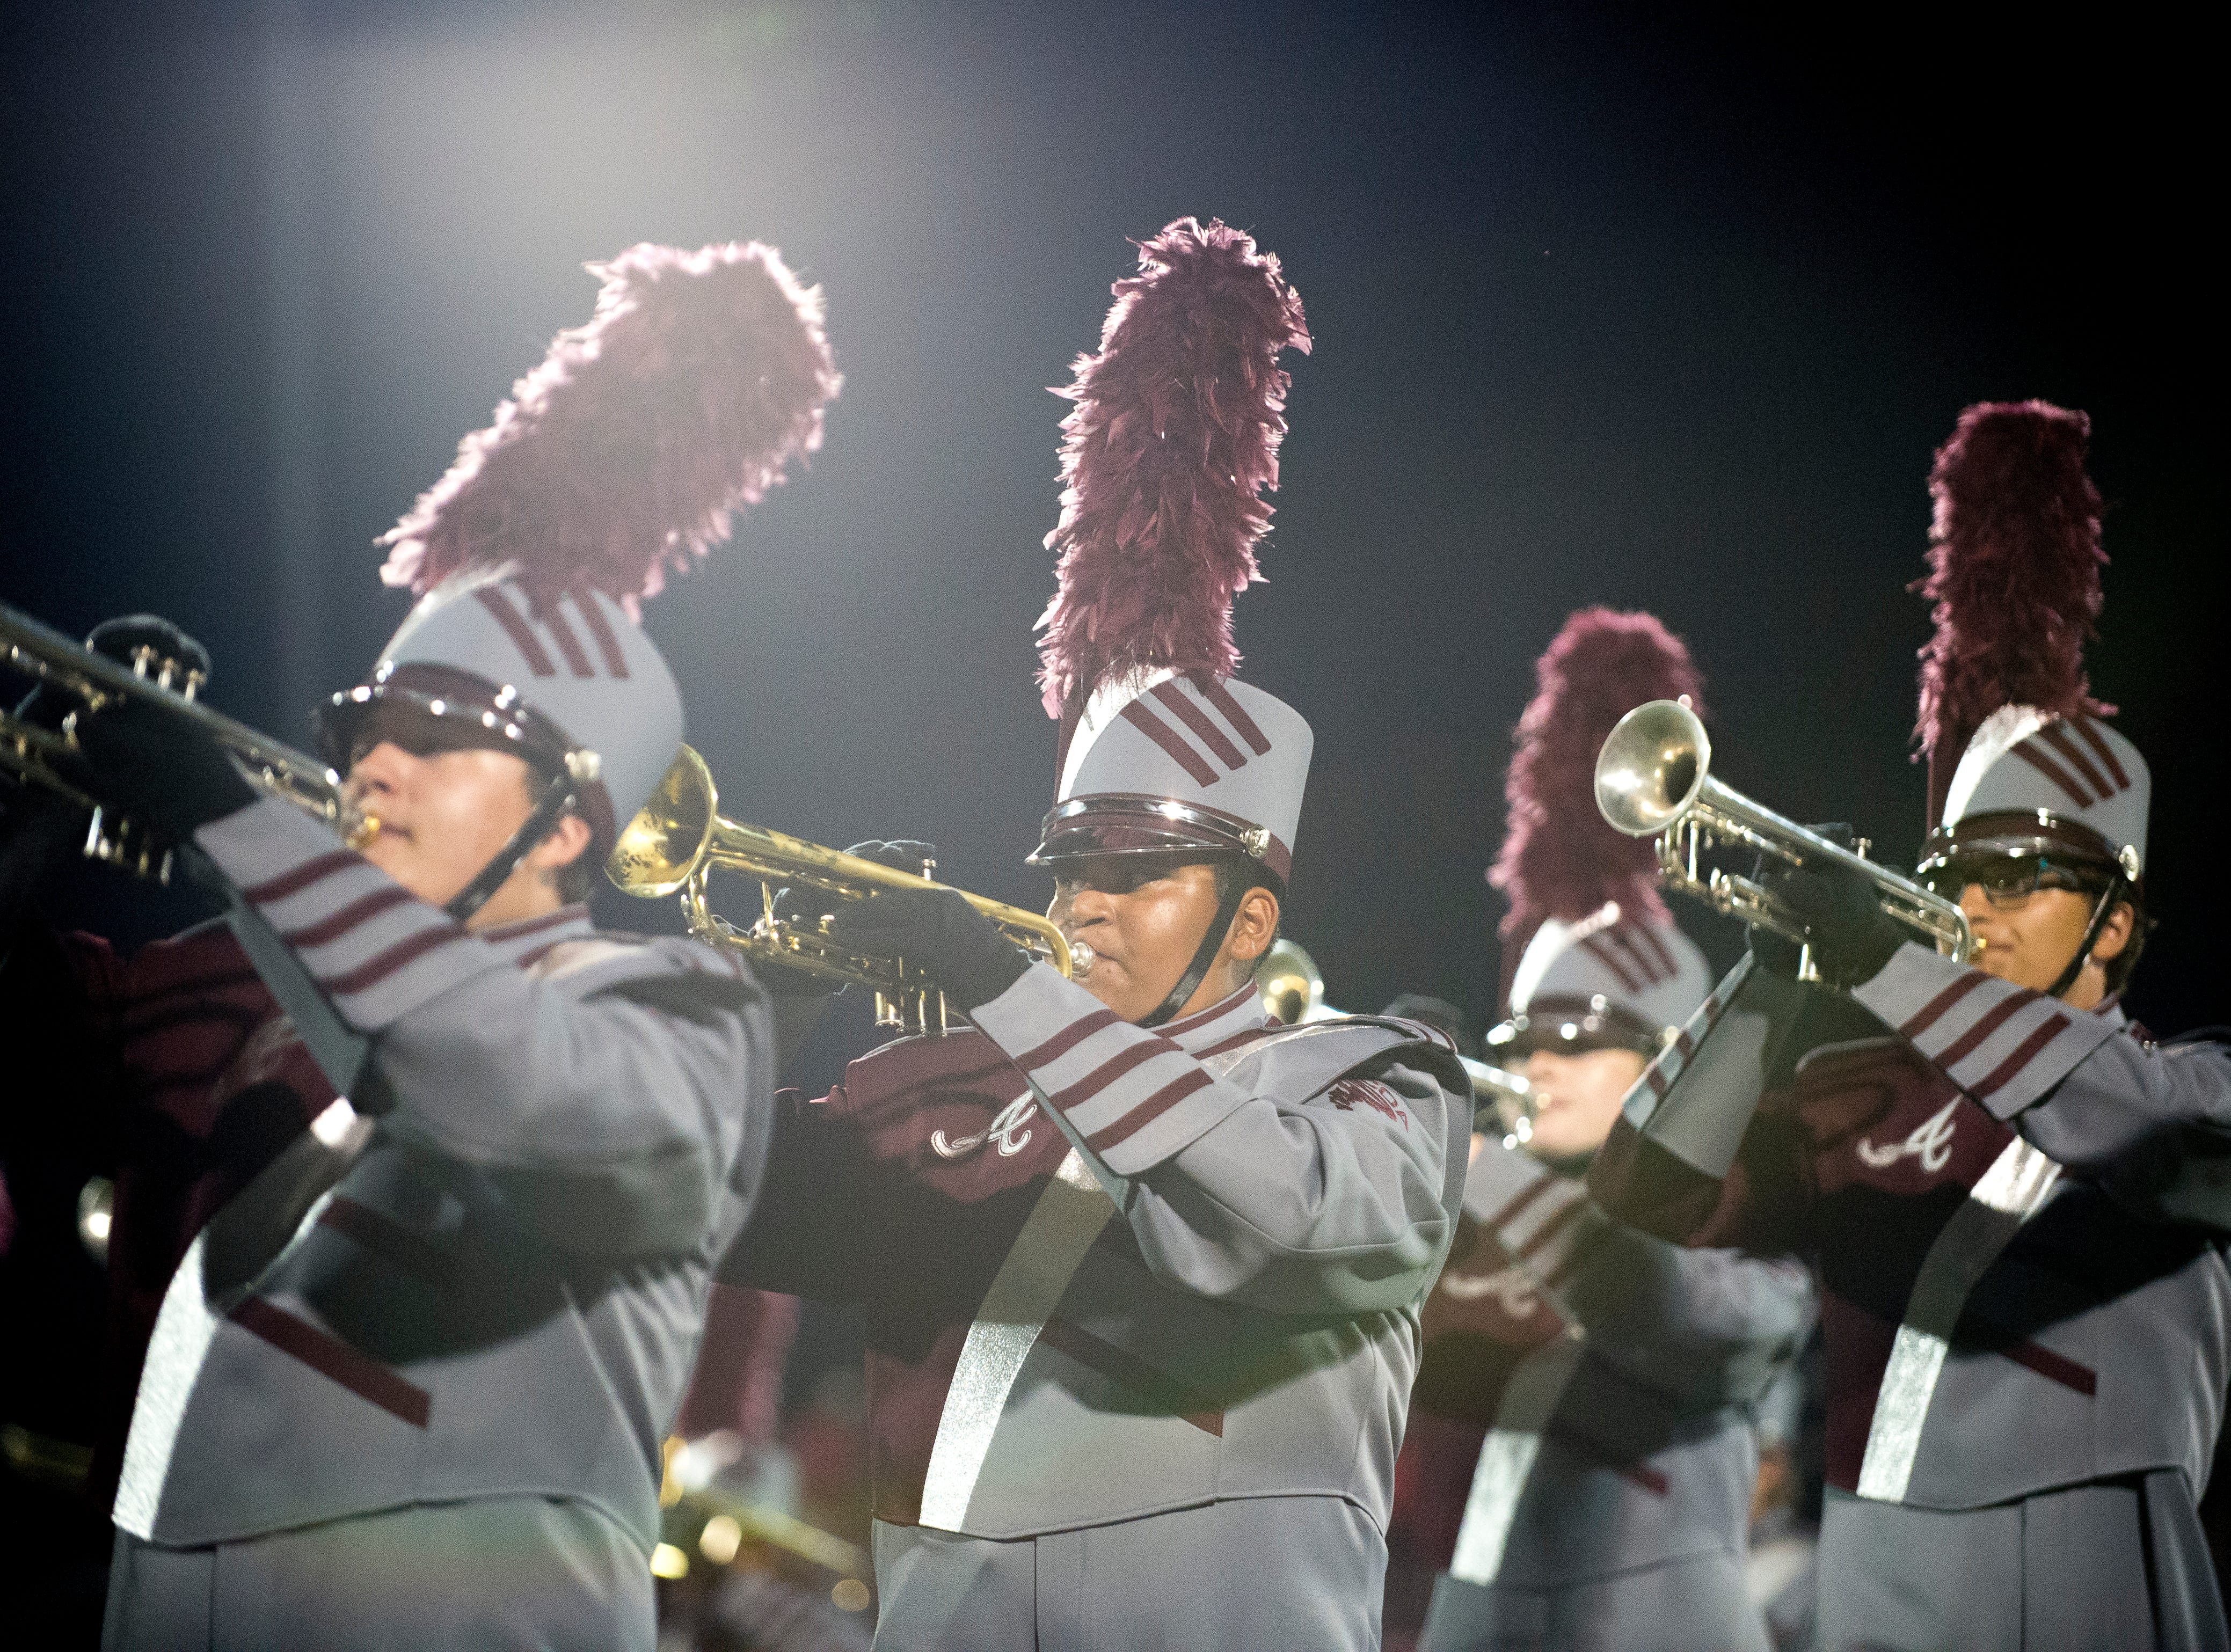 The Alcoa marching band performs at halftime during a game between Alcoa and Dobyns-Bennett at Alcoa High School in Alcoa, Tennessee on Friday, September 21, 2018.